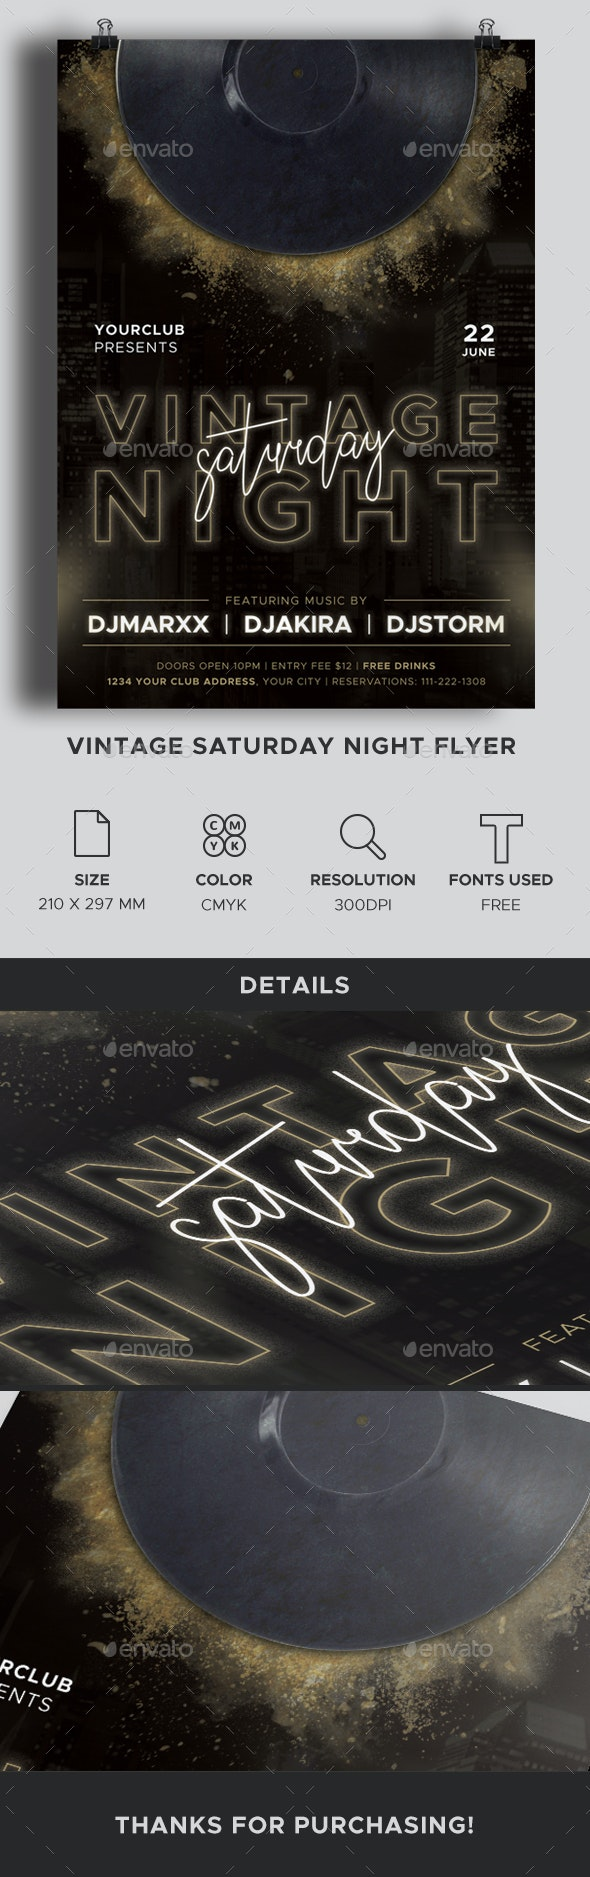 Vintage Saturday Night Flyer - Clubs & Parties Events